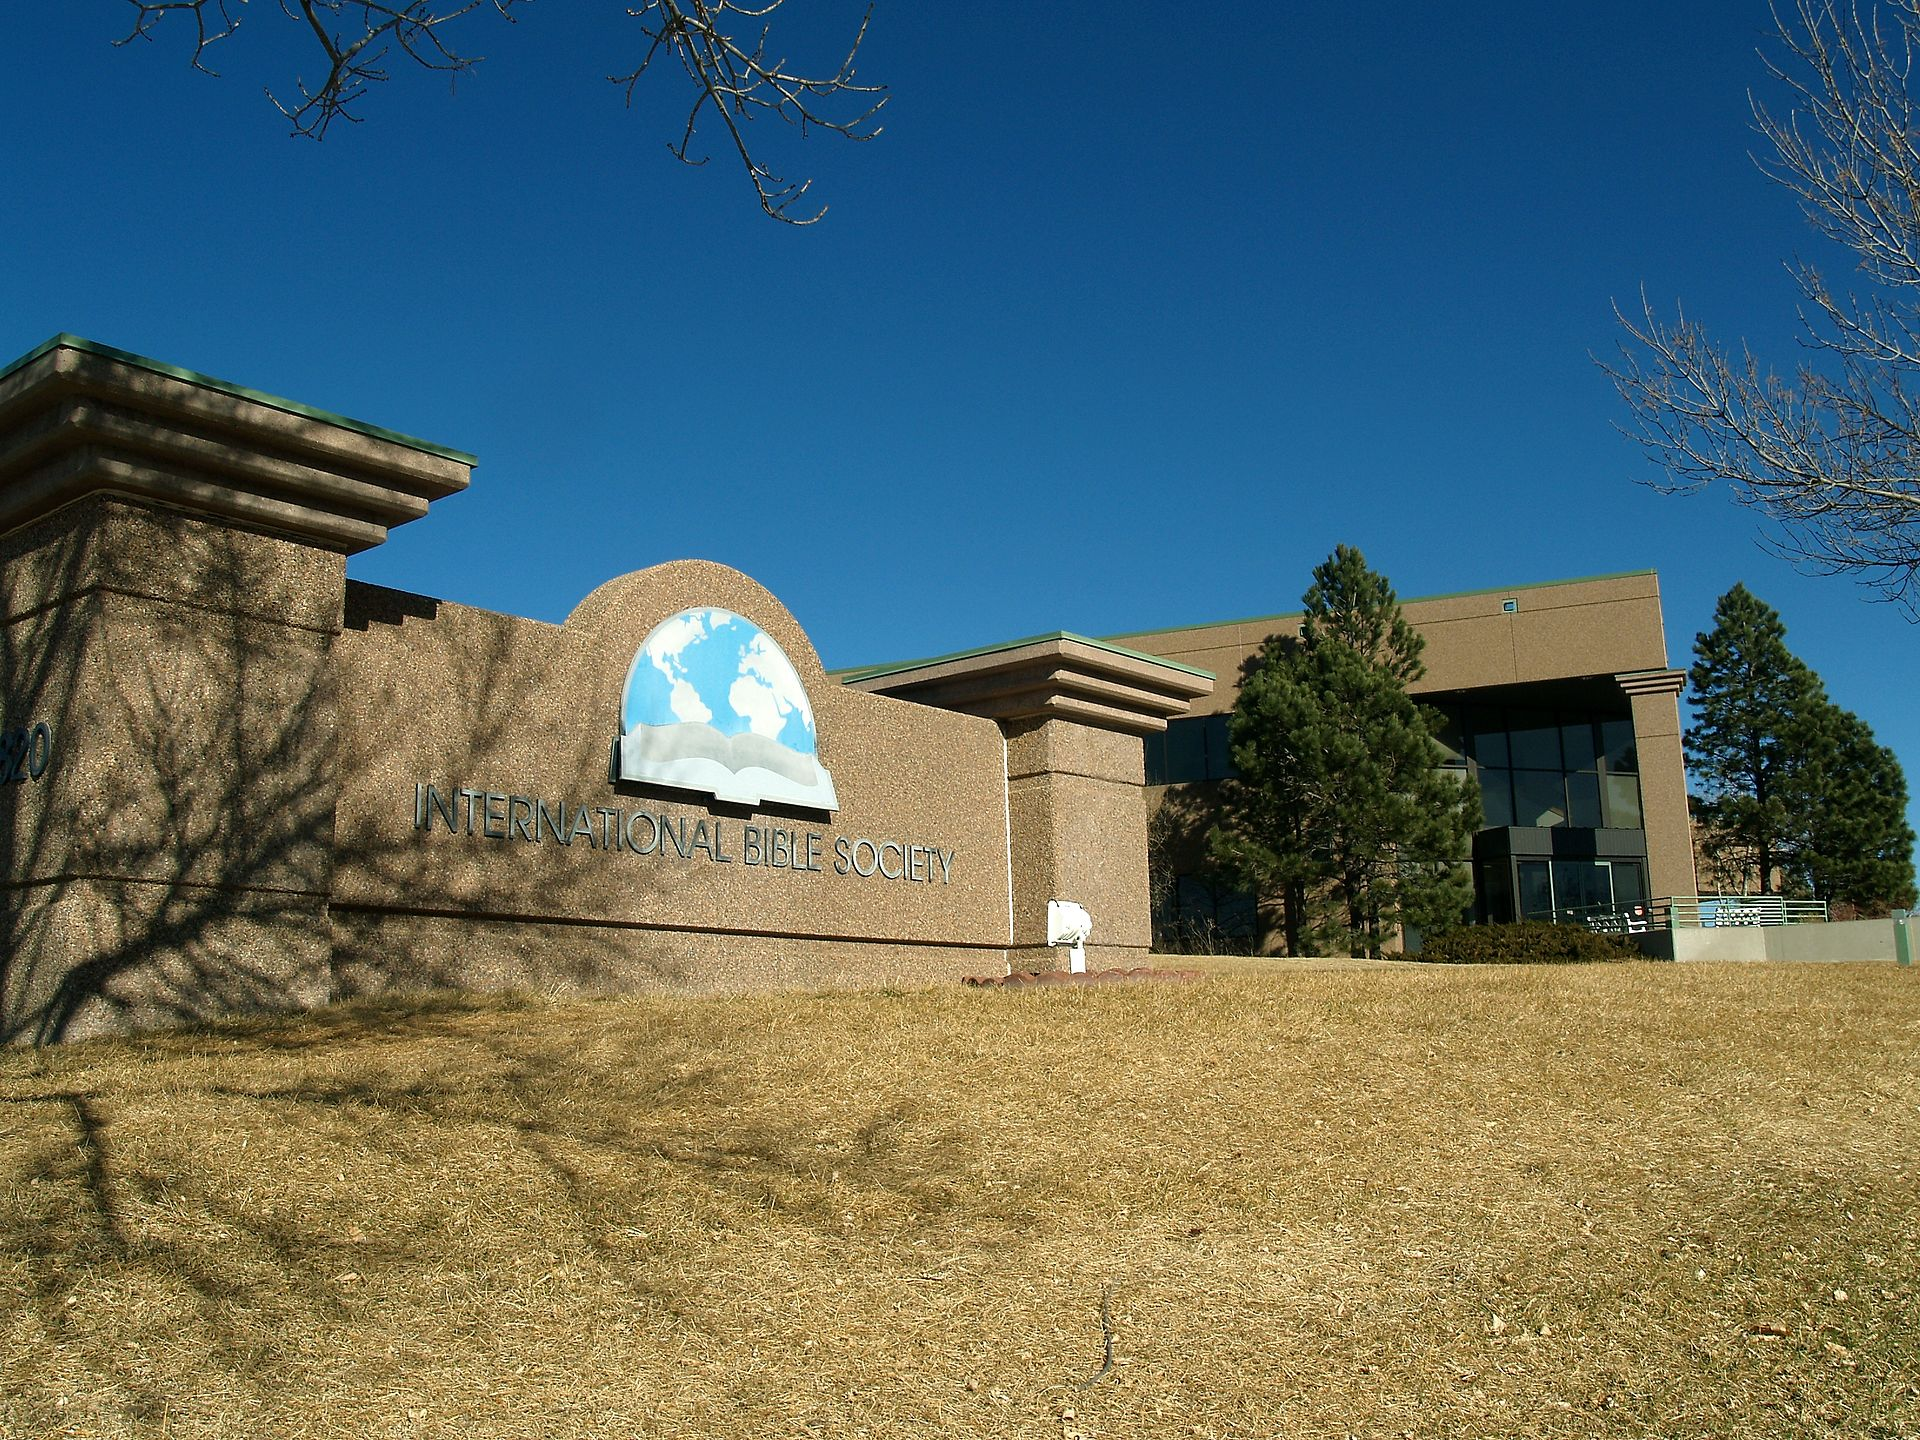 Colorado Springs Hotels With Hot Tubs In Room